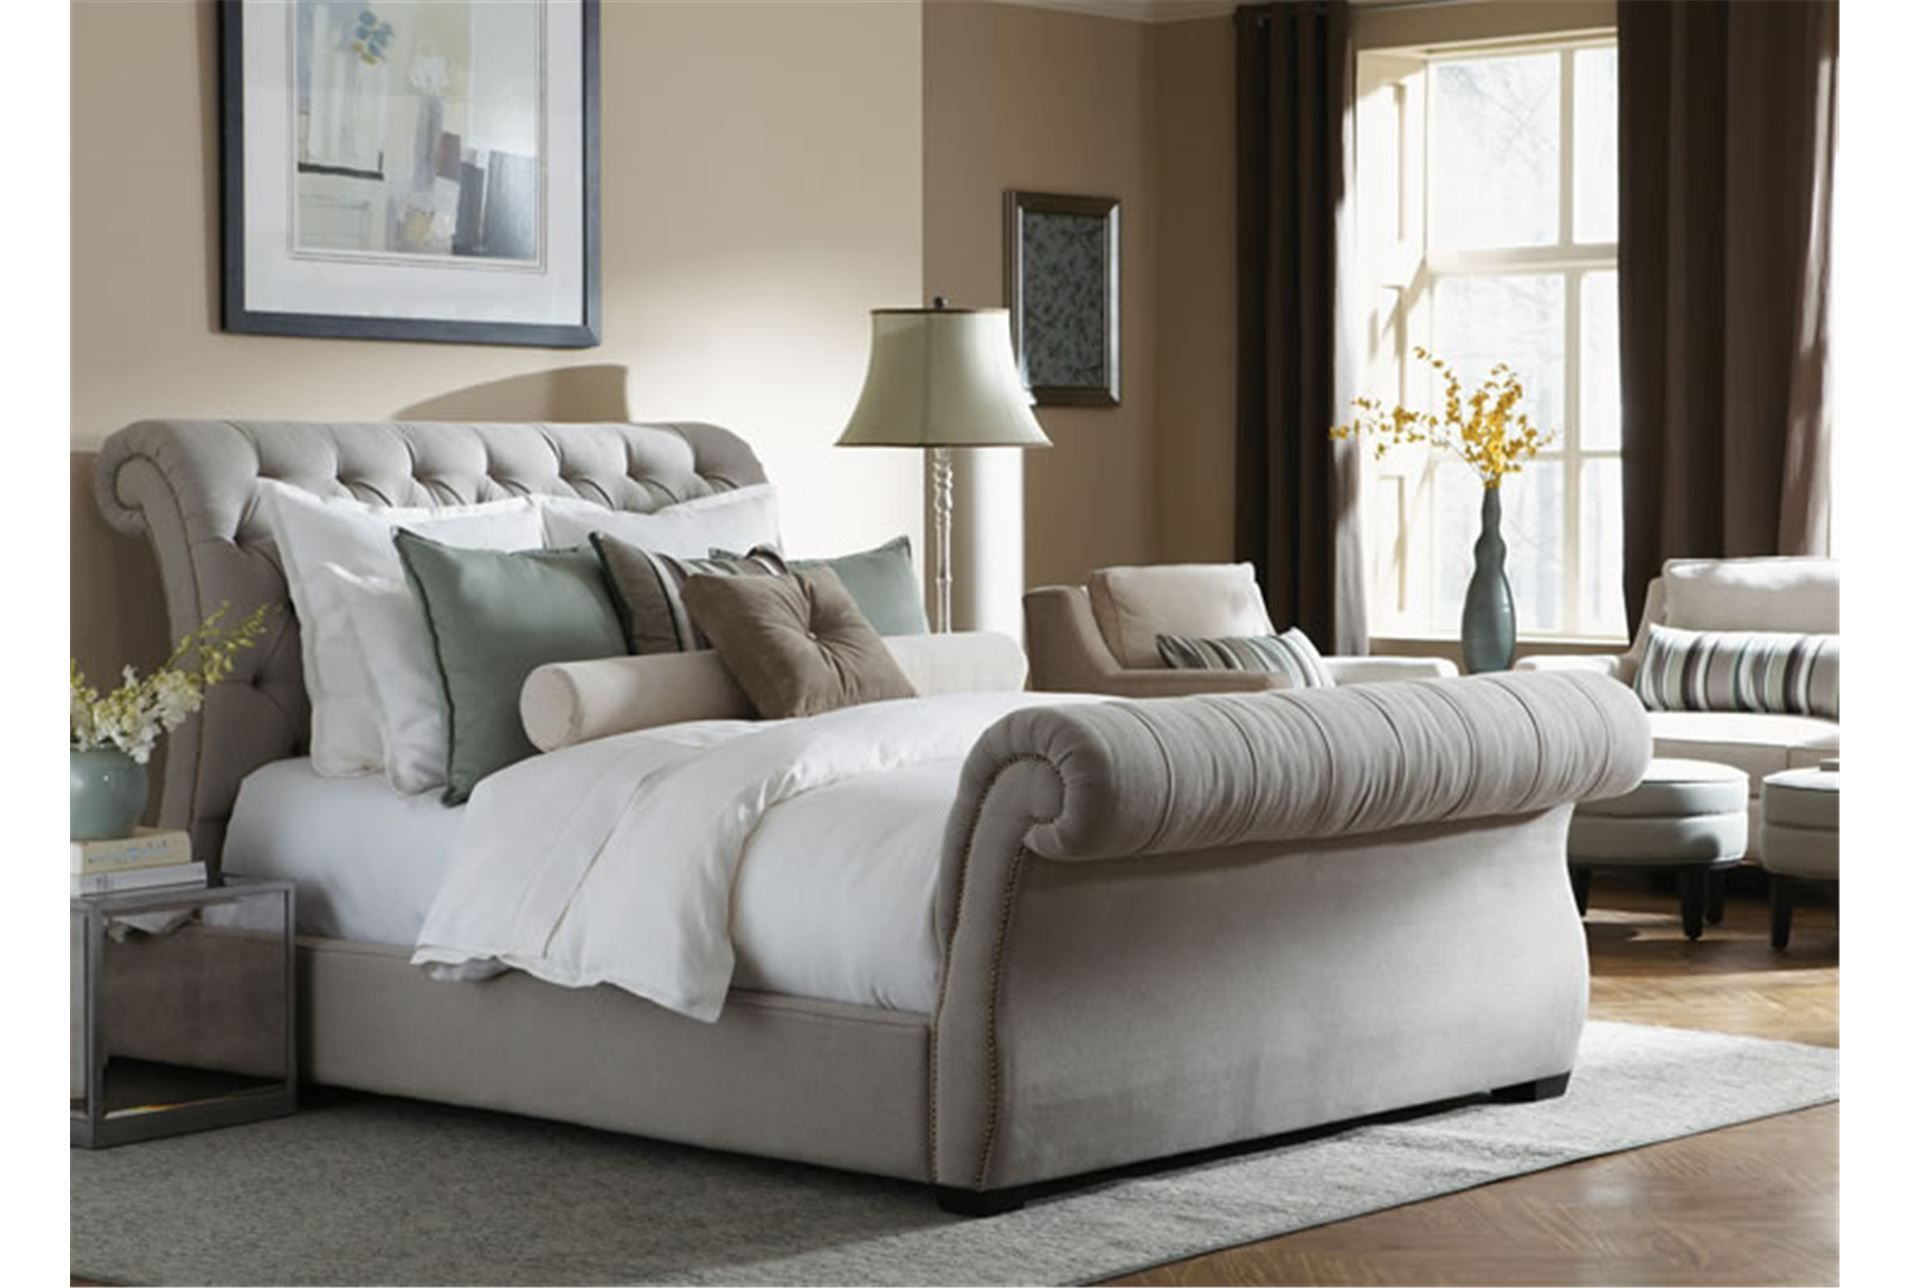 Another Master Bedroom Makeover Small Master Bedroom Master Bedrooms Decor Master Bedroom Design